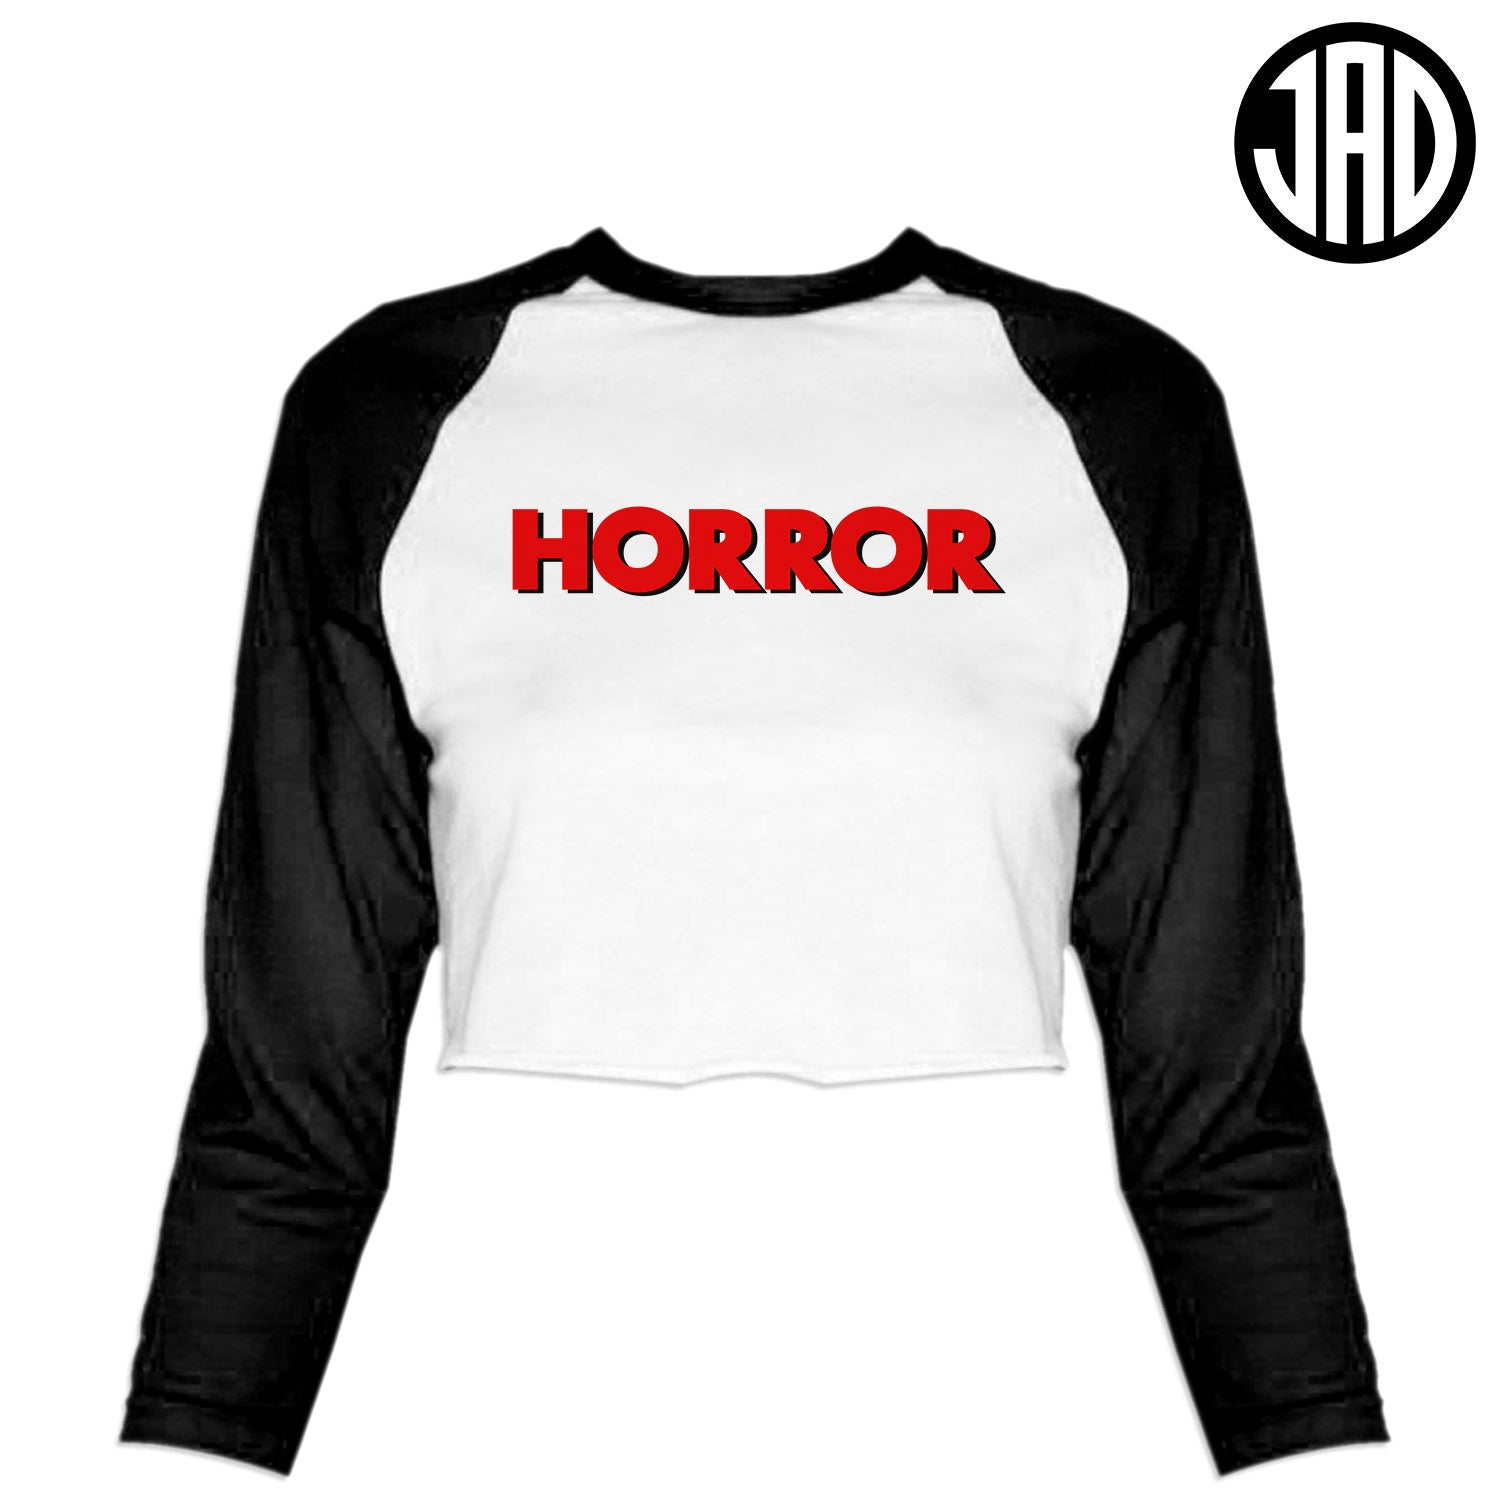 Horror High - Women's Cropped Baseball Tee